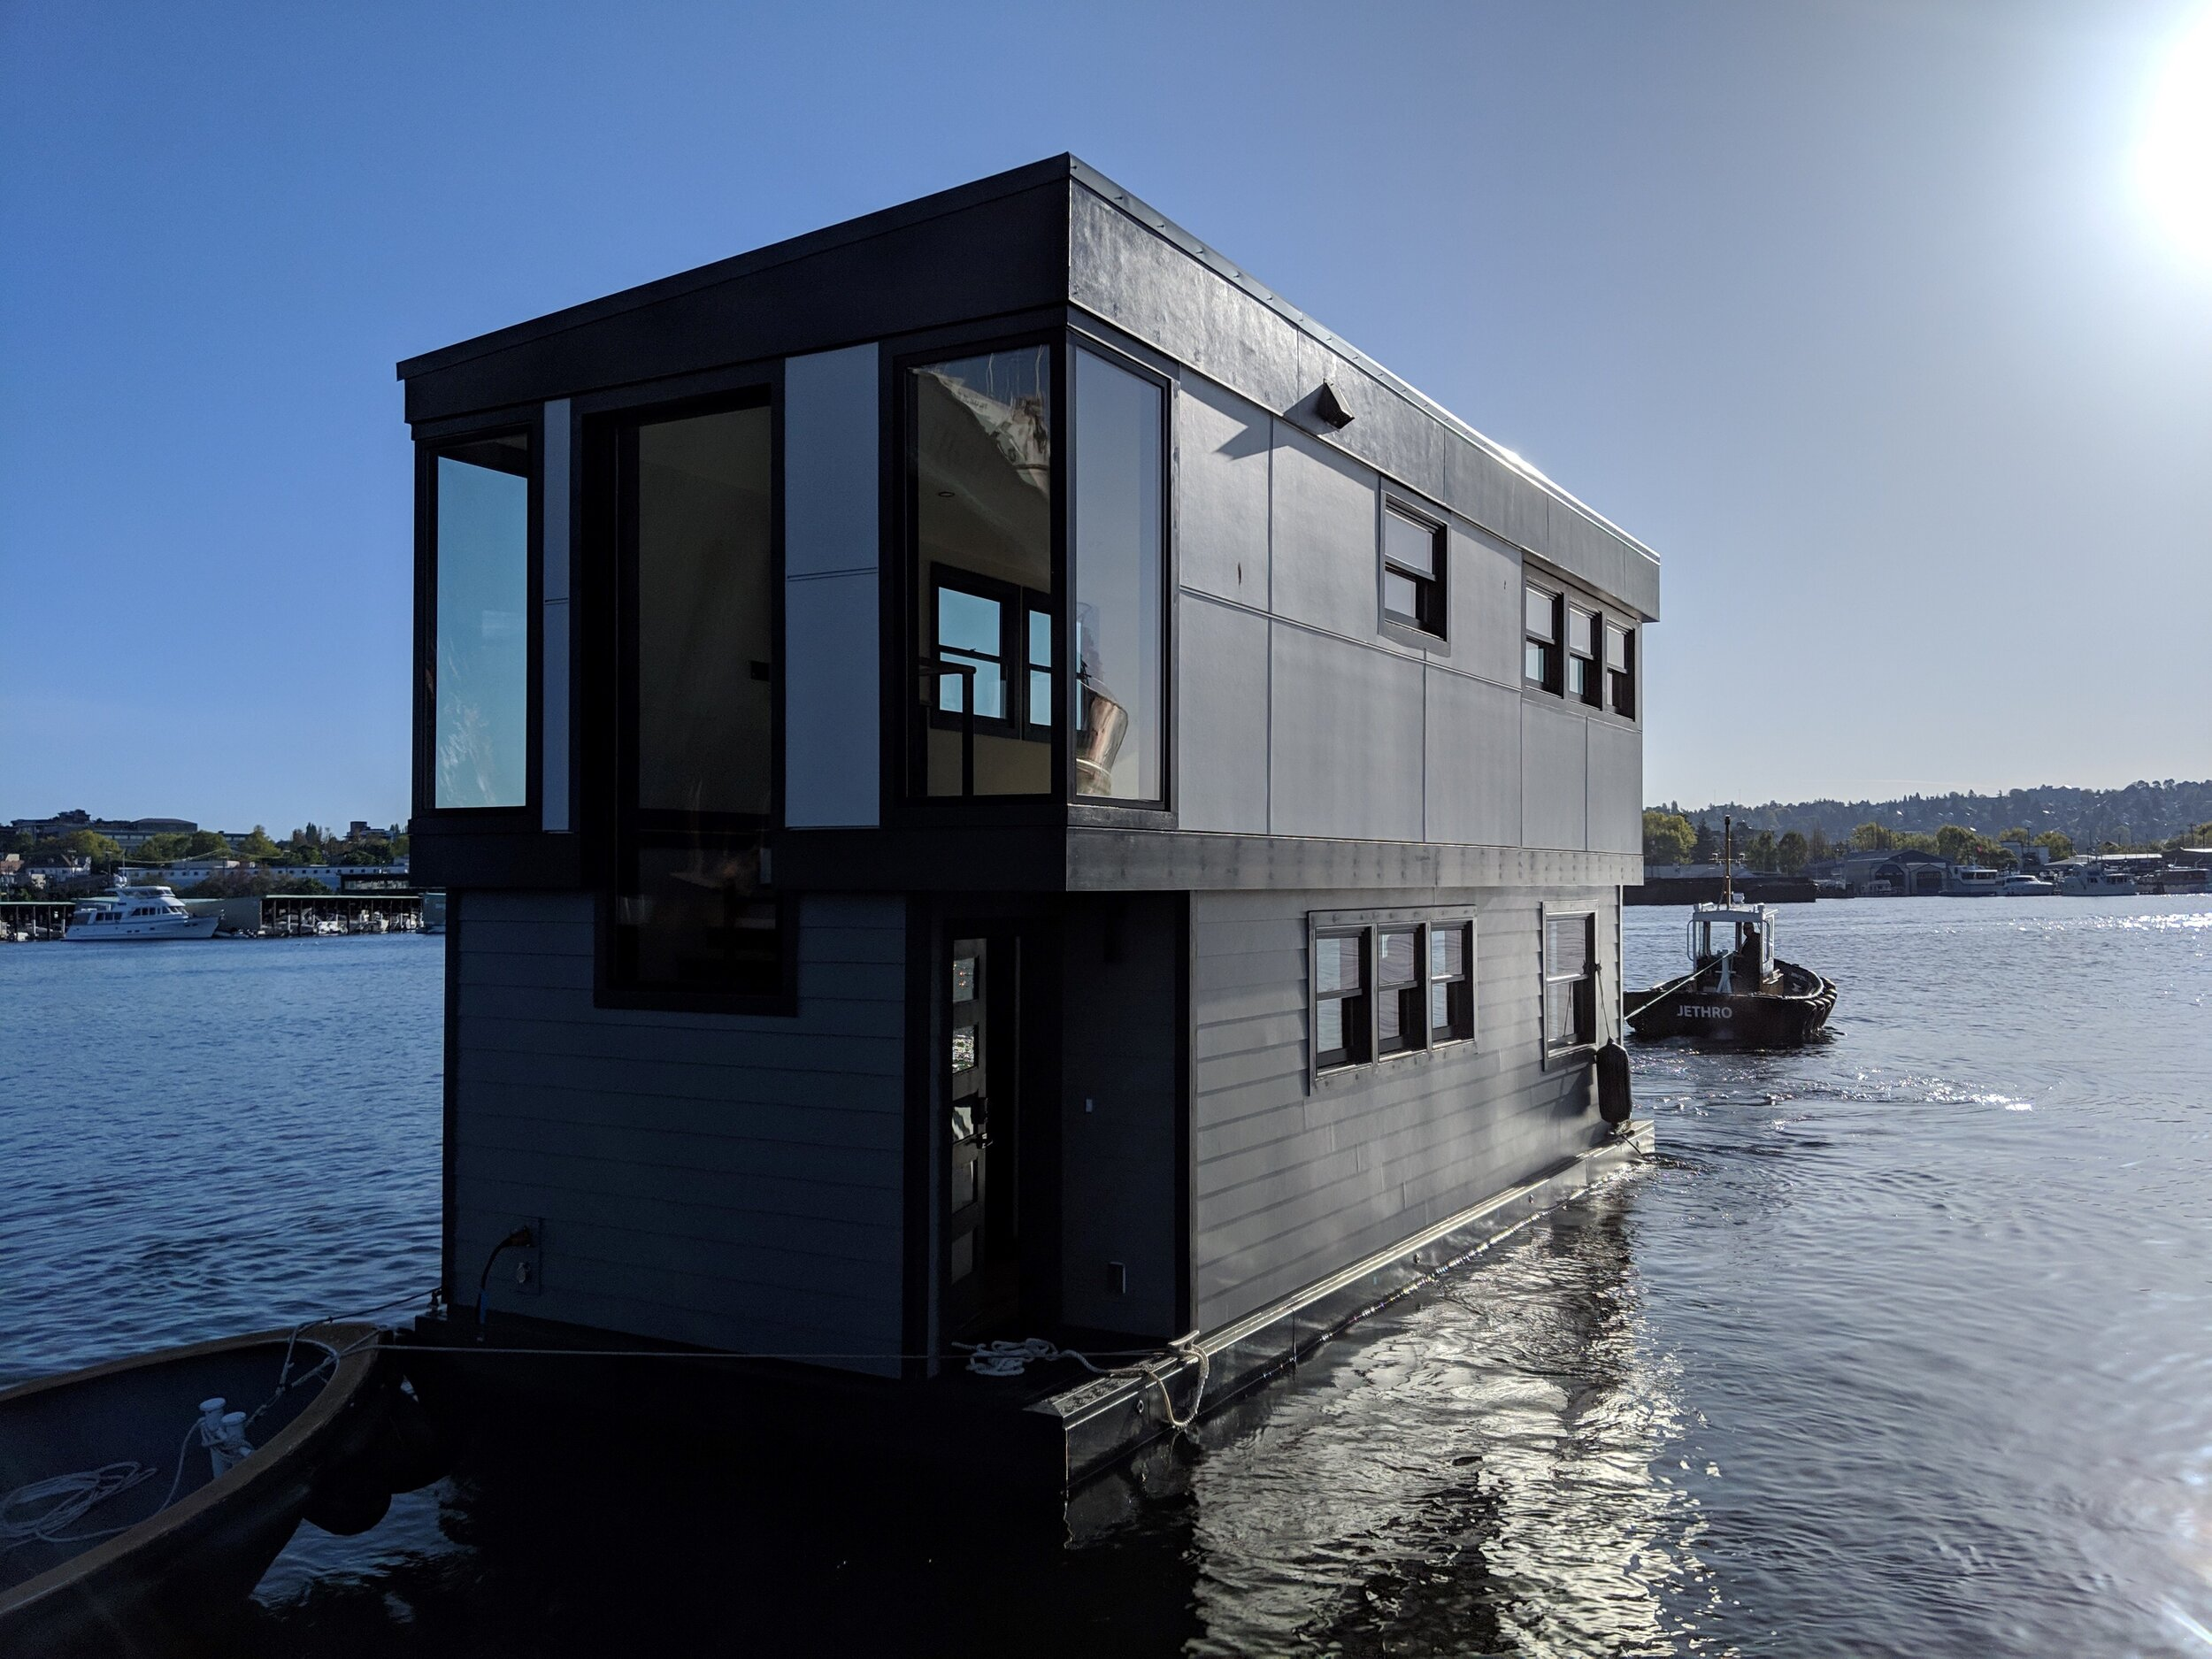 We are moving Equinox to a brand new slip - Come by 2540 Westlake Avenue North to see our newest houseboat move. We are throwing a party for all of our followers and friends. Email contact@steadyfloats.com for more info.Move date is 9/27/2019